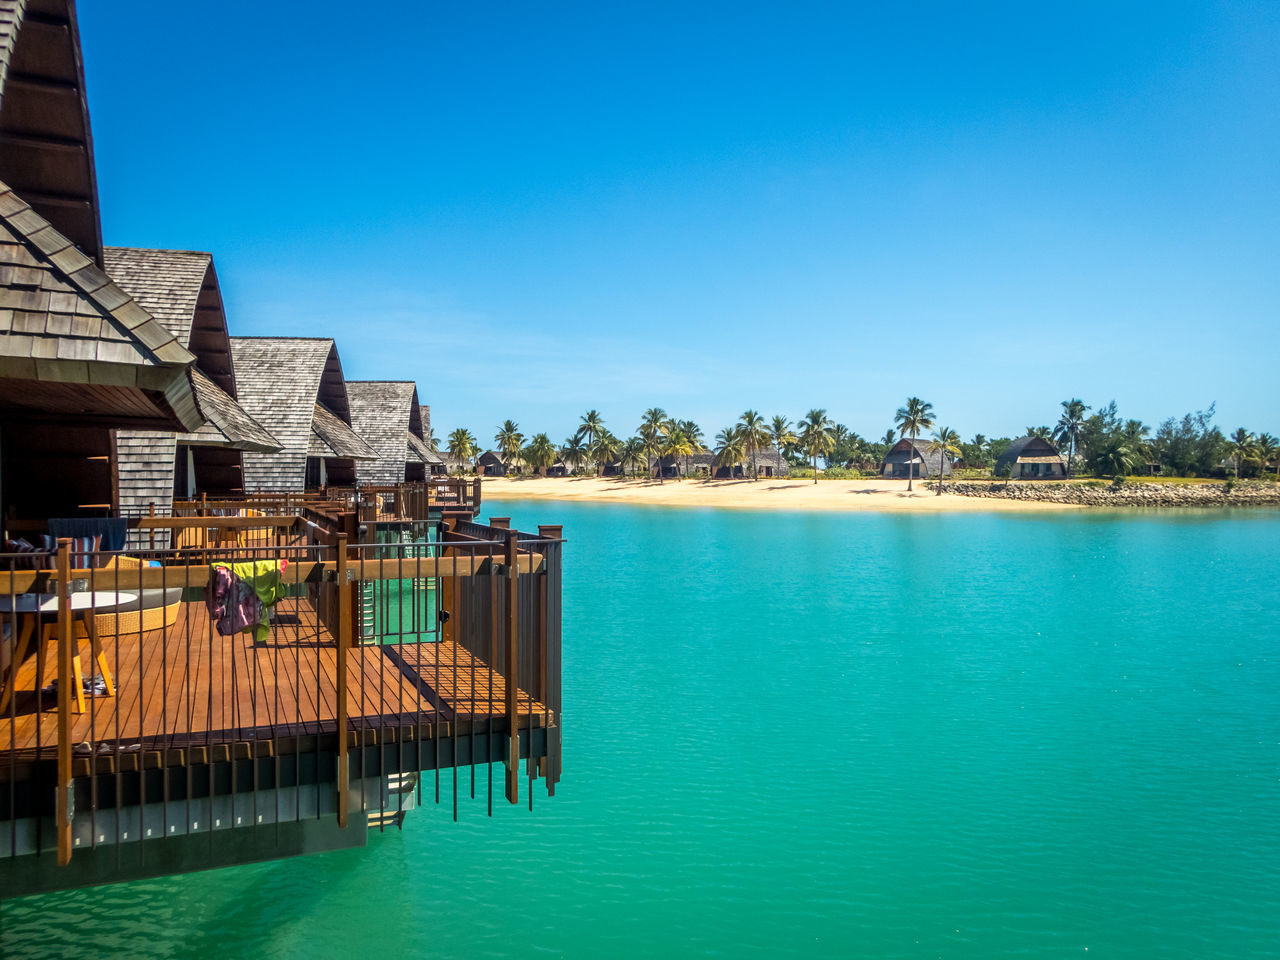 Lined up (3) Architecture Blue Building Exterior Built Structure Bure Clear Sky Day Fiji Holiday Villa Lagoon Lagoon Water Nature No People Outdoors Over Water Overwater Bungalow Scenics Sea Sky Tree Water